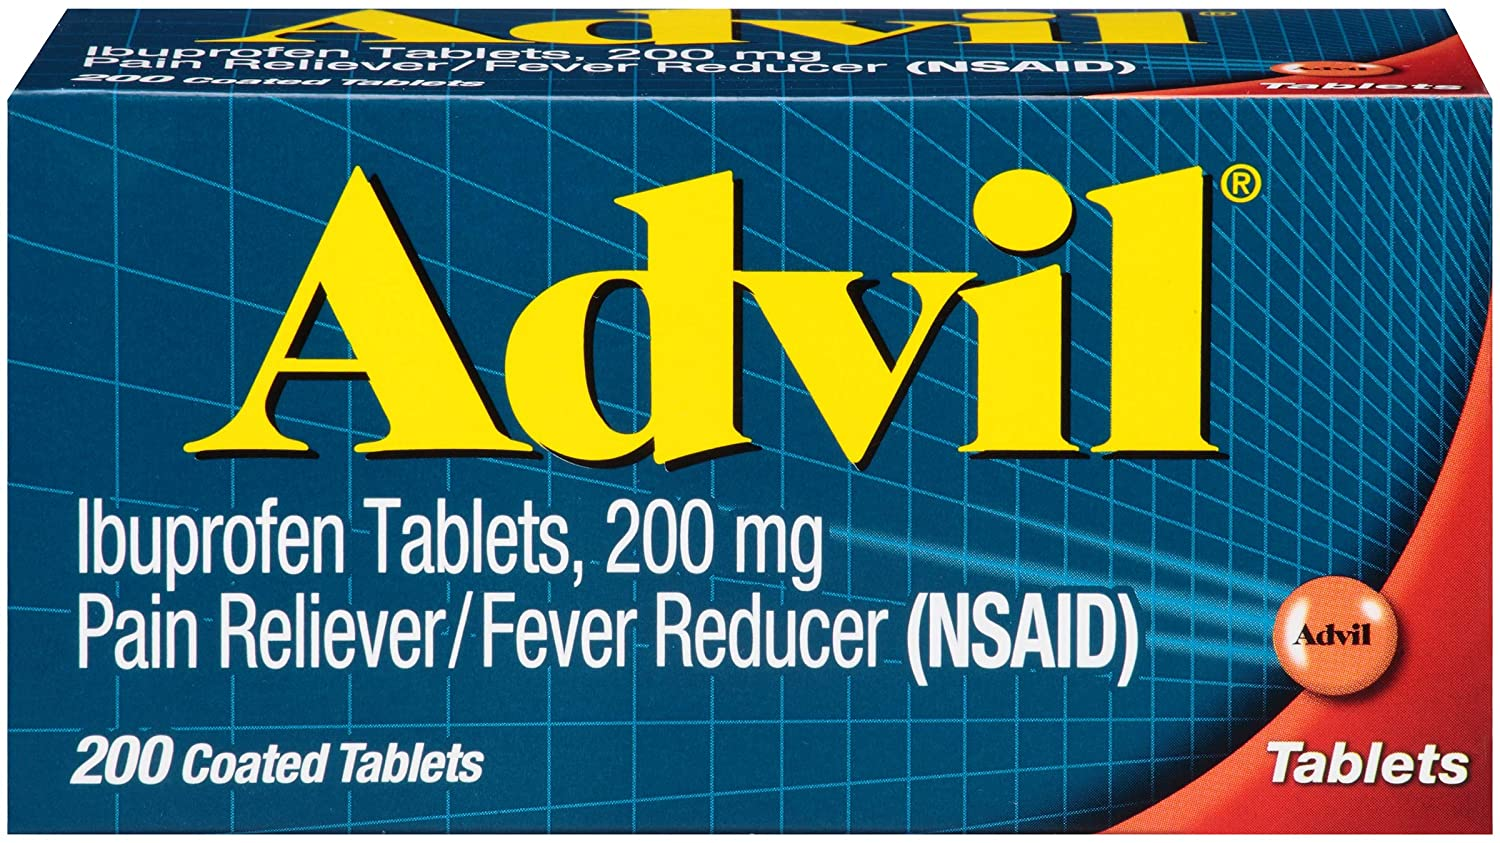 Advil Coated Tablets Pain Reliever and Fever Reducer, Ibuprofen 200mg, 200 Count, Fast-Acting Formula for Headache Relief, Toothache Pain Relief and Arthritis Pain Relief